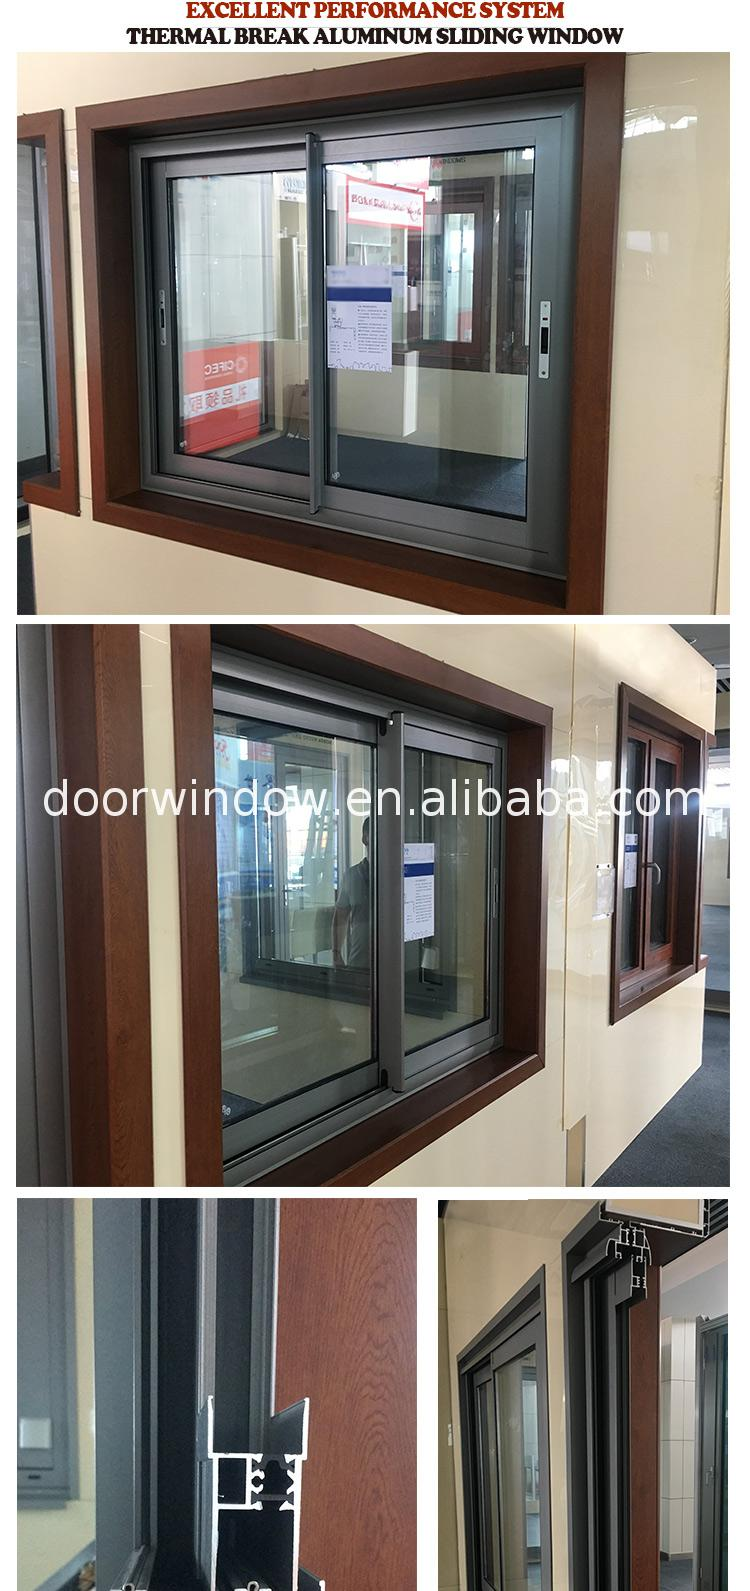 Hot Sale window styles australia sizes installation australian standards